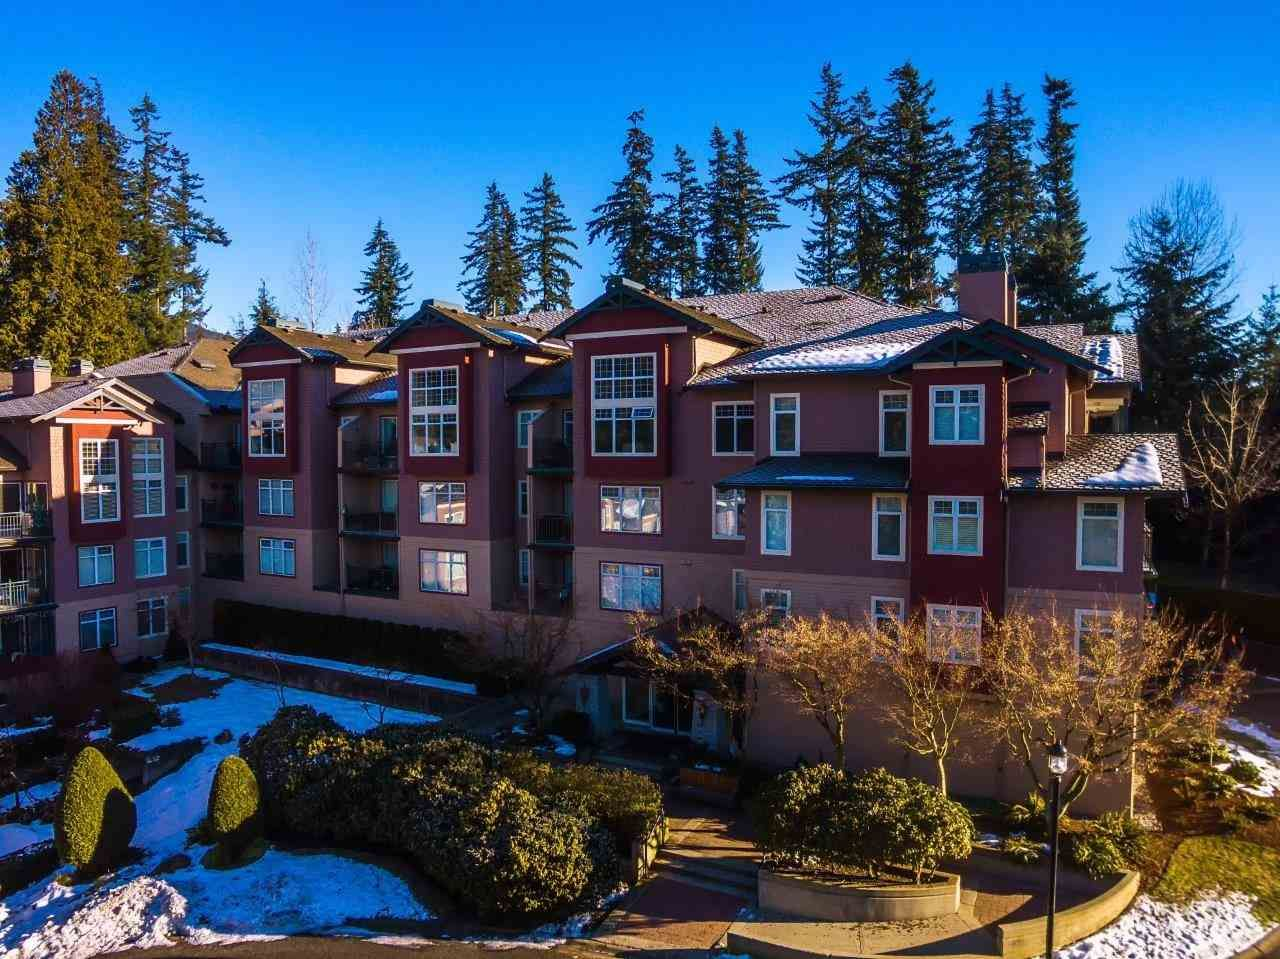 """Main Photo: 107 1140 STRATHAVEN Drive in North Vancouver: Northlands Condo for sale in """"Strathaven"""" : MLS®# R2131232"""